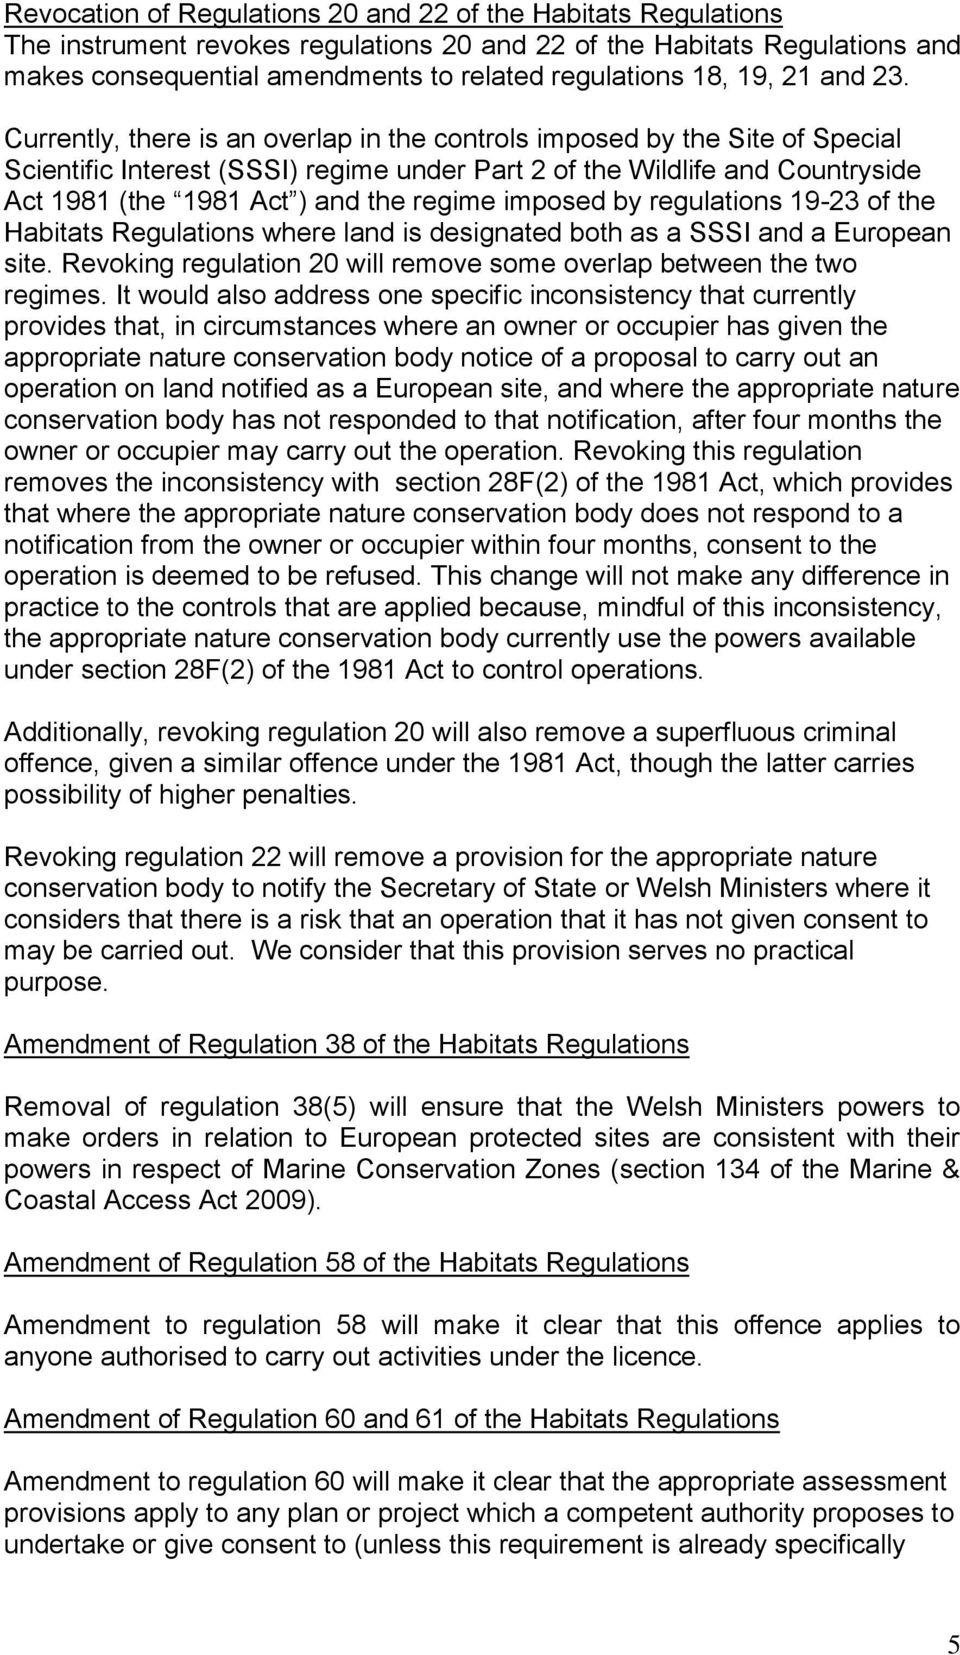 Currently, there is an overlap in the controls imposed by the Site of Special Scientific Interest (SSSI) regime under Part 2 of the Wildlife and Countryside Act 1981 (the 1981 Act ) and the regime